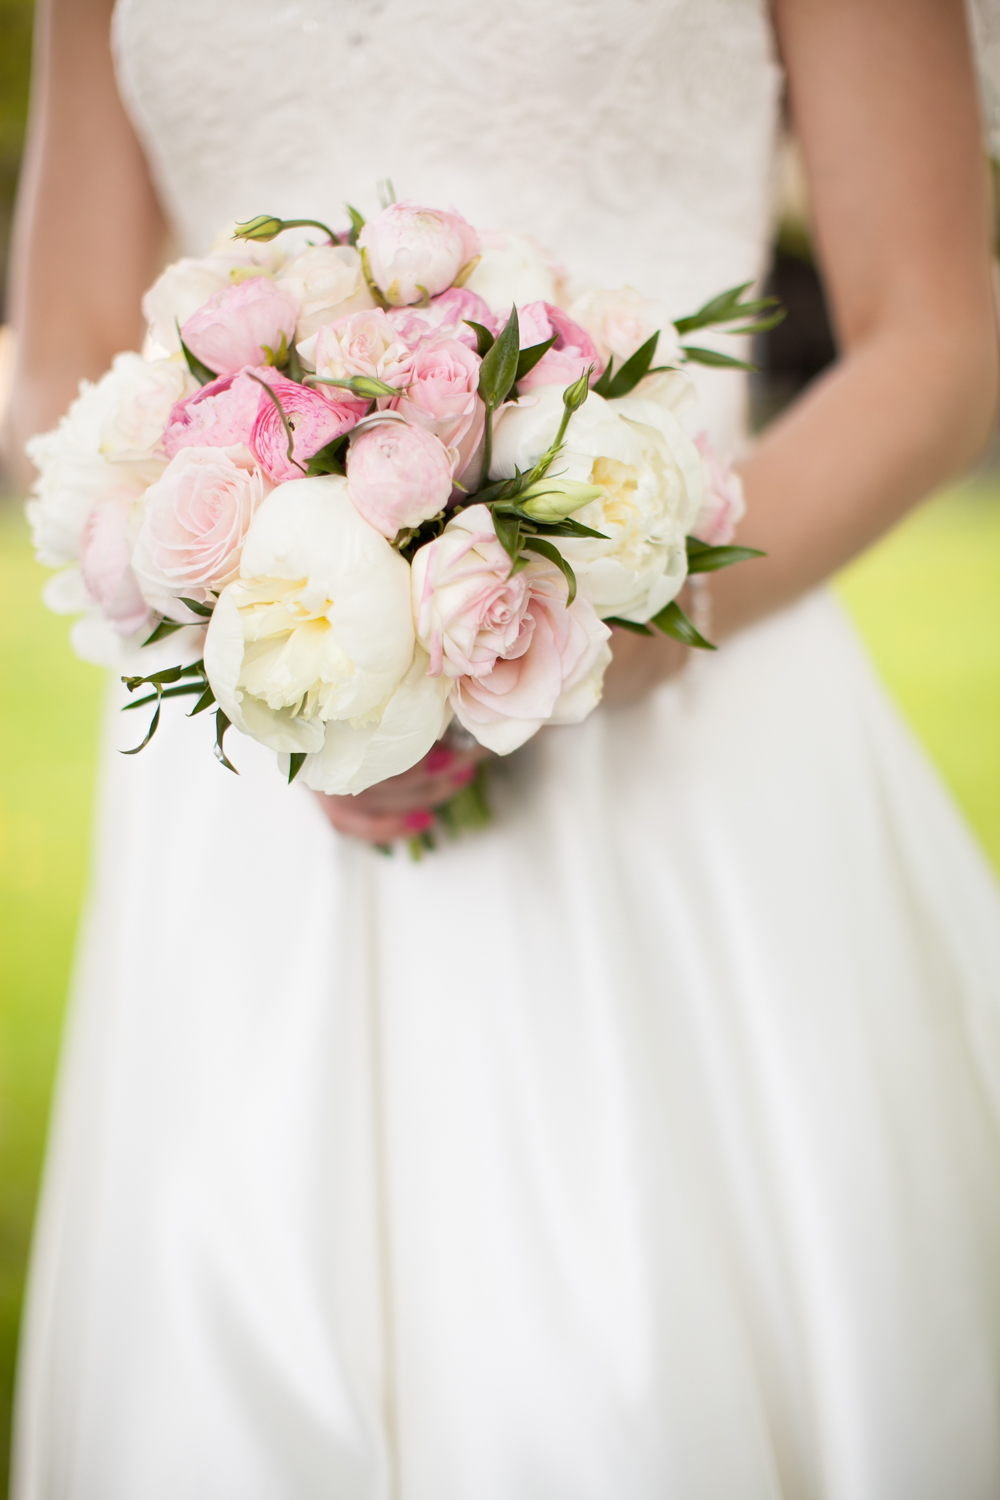 Blush pink and white bridal bouquet – Jubilee Flower Studio